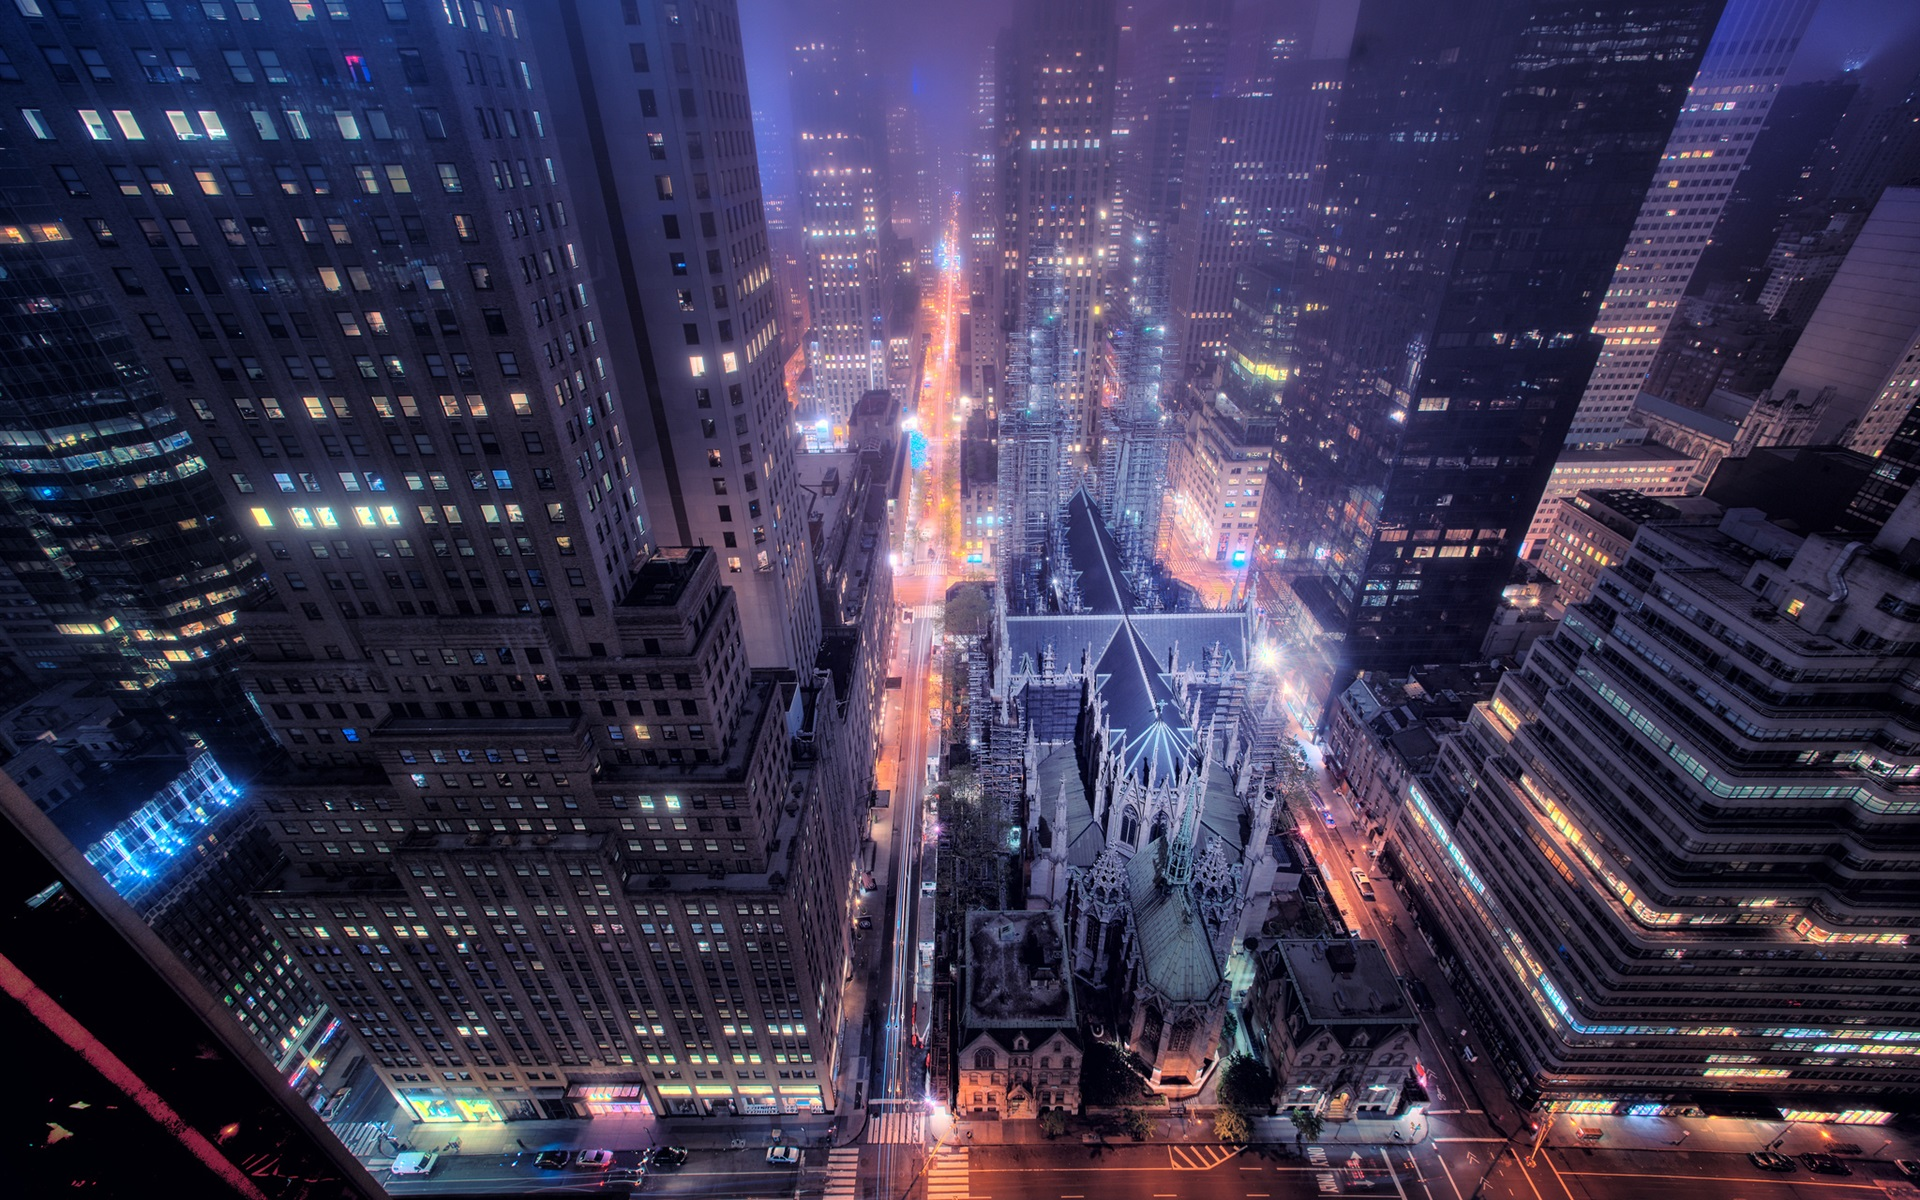 Wallpaper New York City Night View Street Buildings Skyscrapers Lights Usa 1920x1200 Hd Picture Image